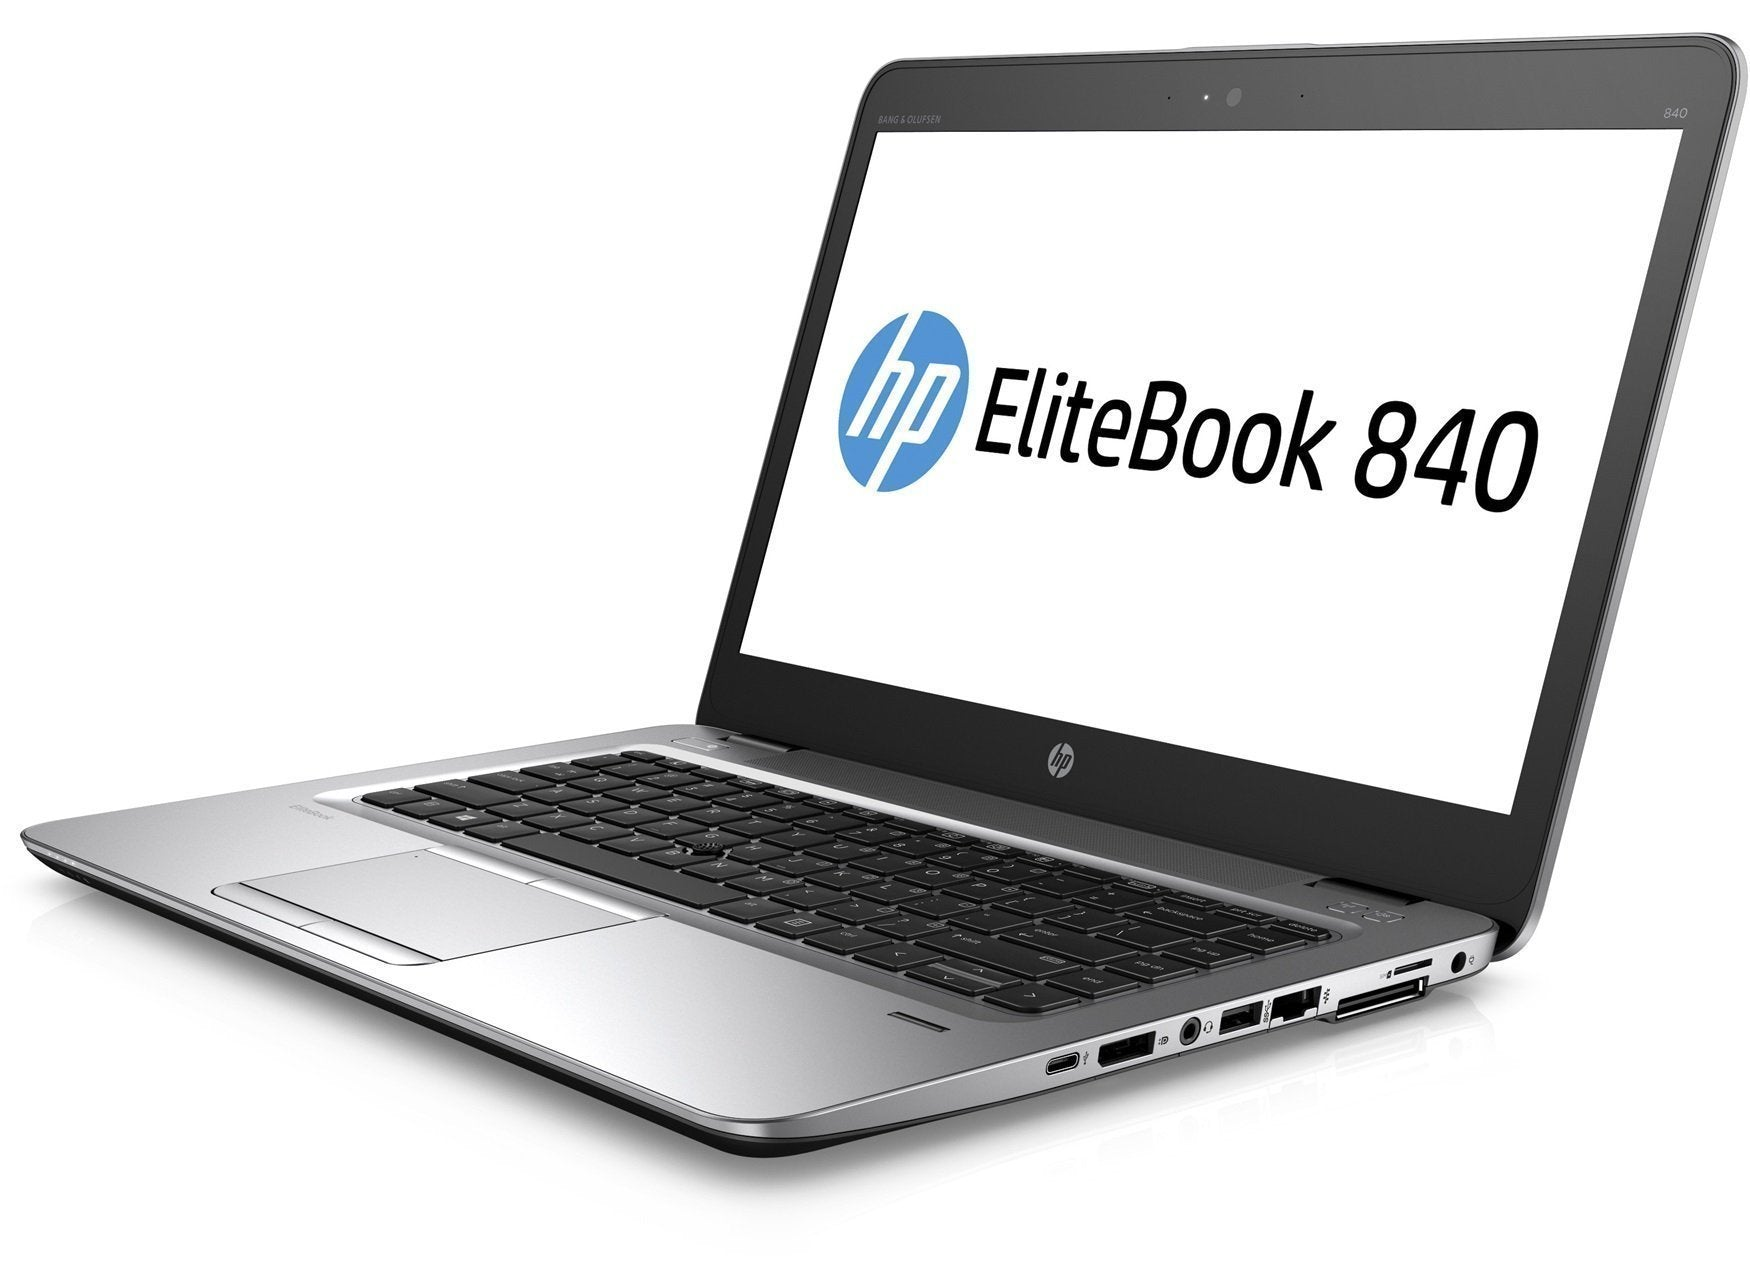 "HP Elitebook 840 G3 EX-LEASE i5-6200U 2.3GHz 8GB RAM 256GB SSD 14"" HD WebCam NO ODD Windows 10 HOME"